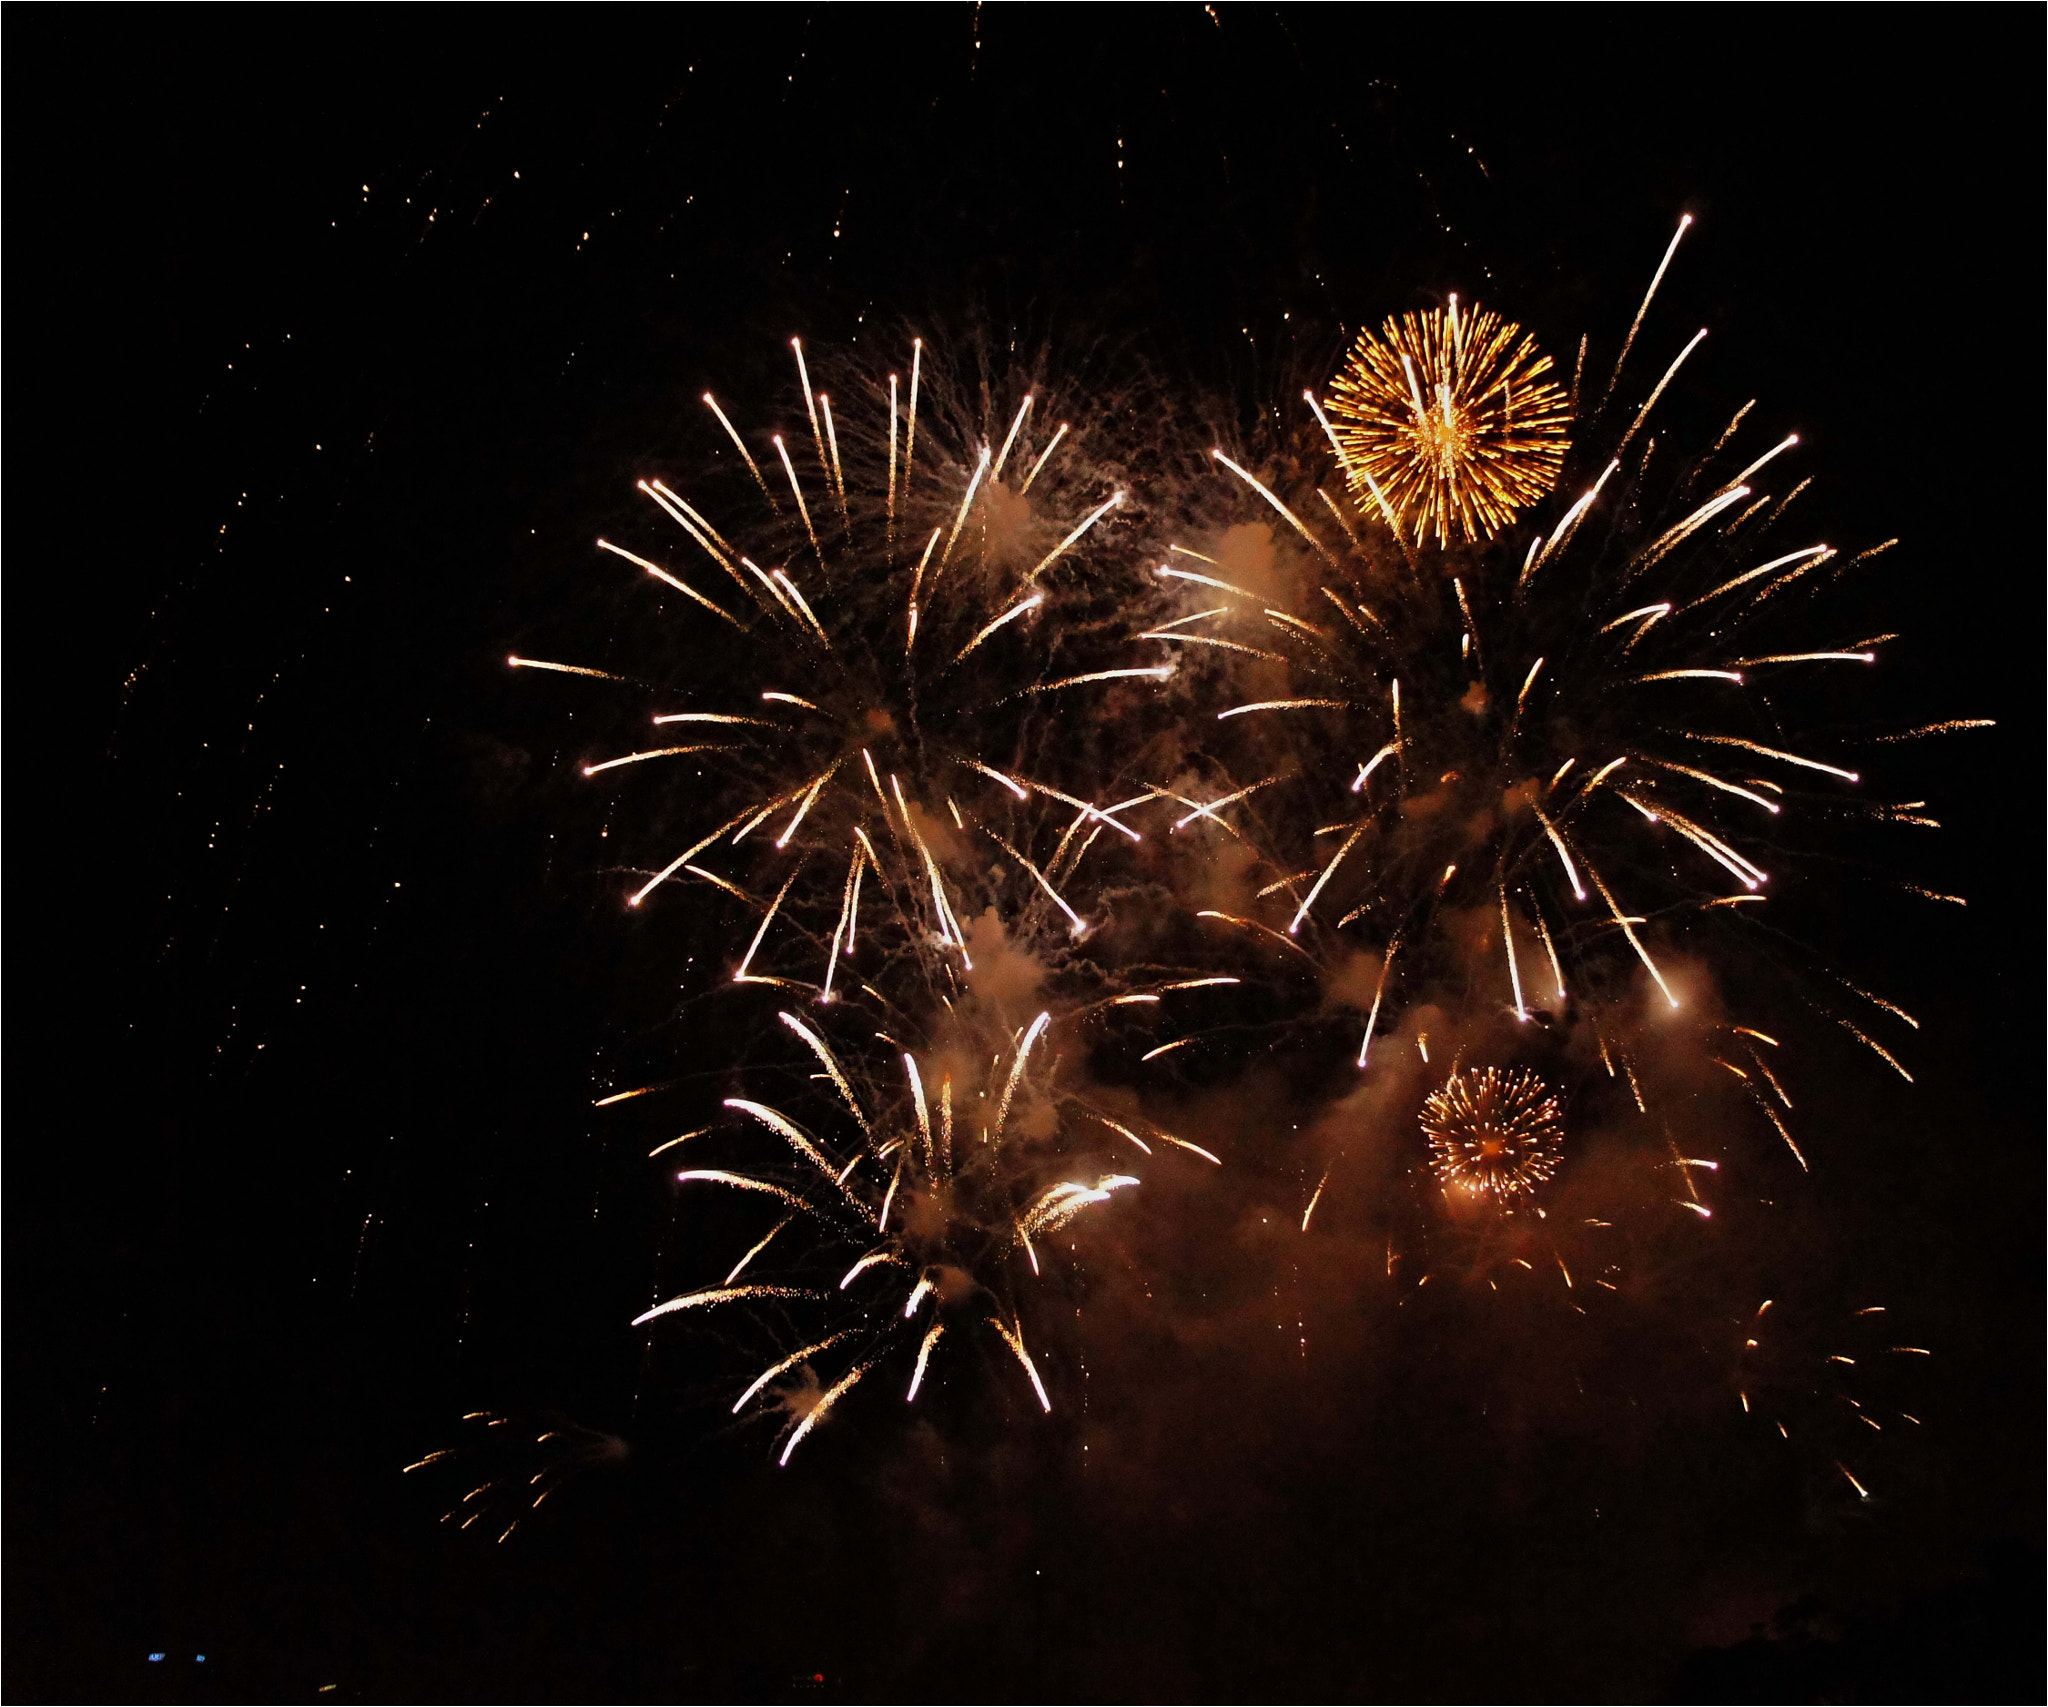 Photograph 2010 new year eve fire work by bishow joshi on 500px